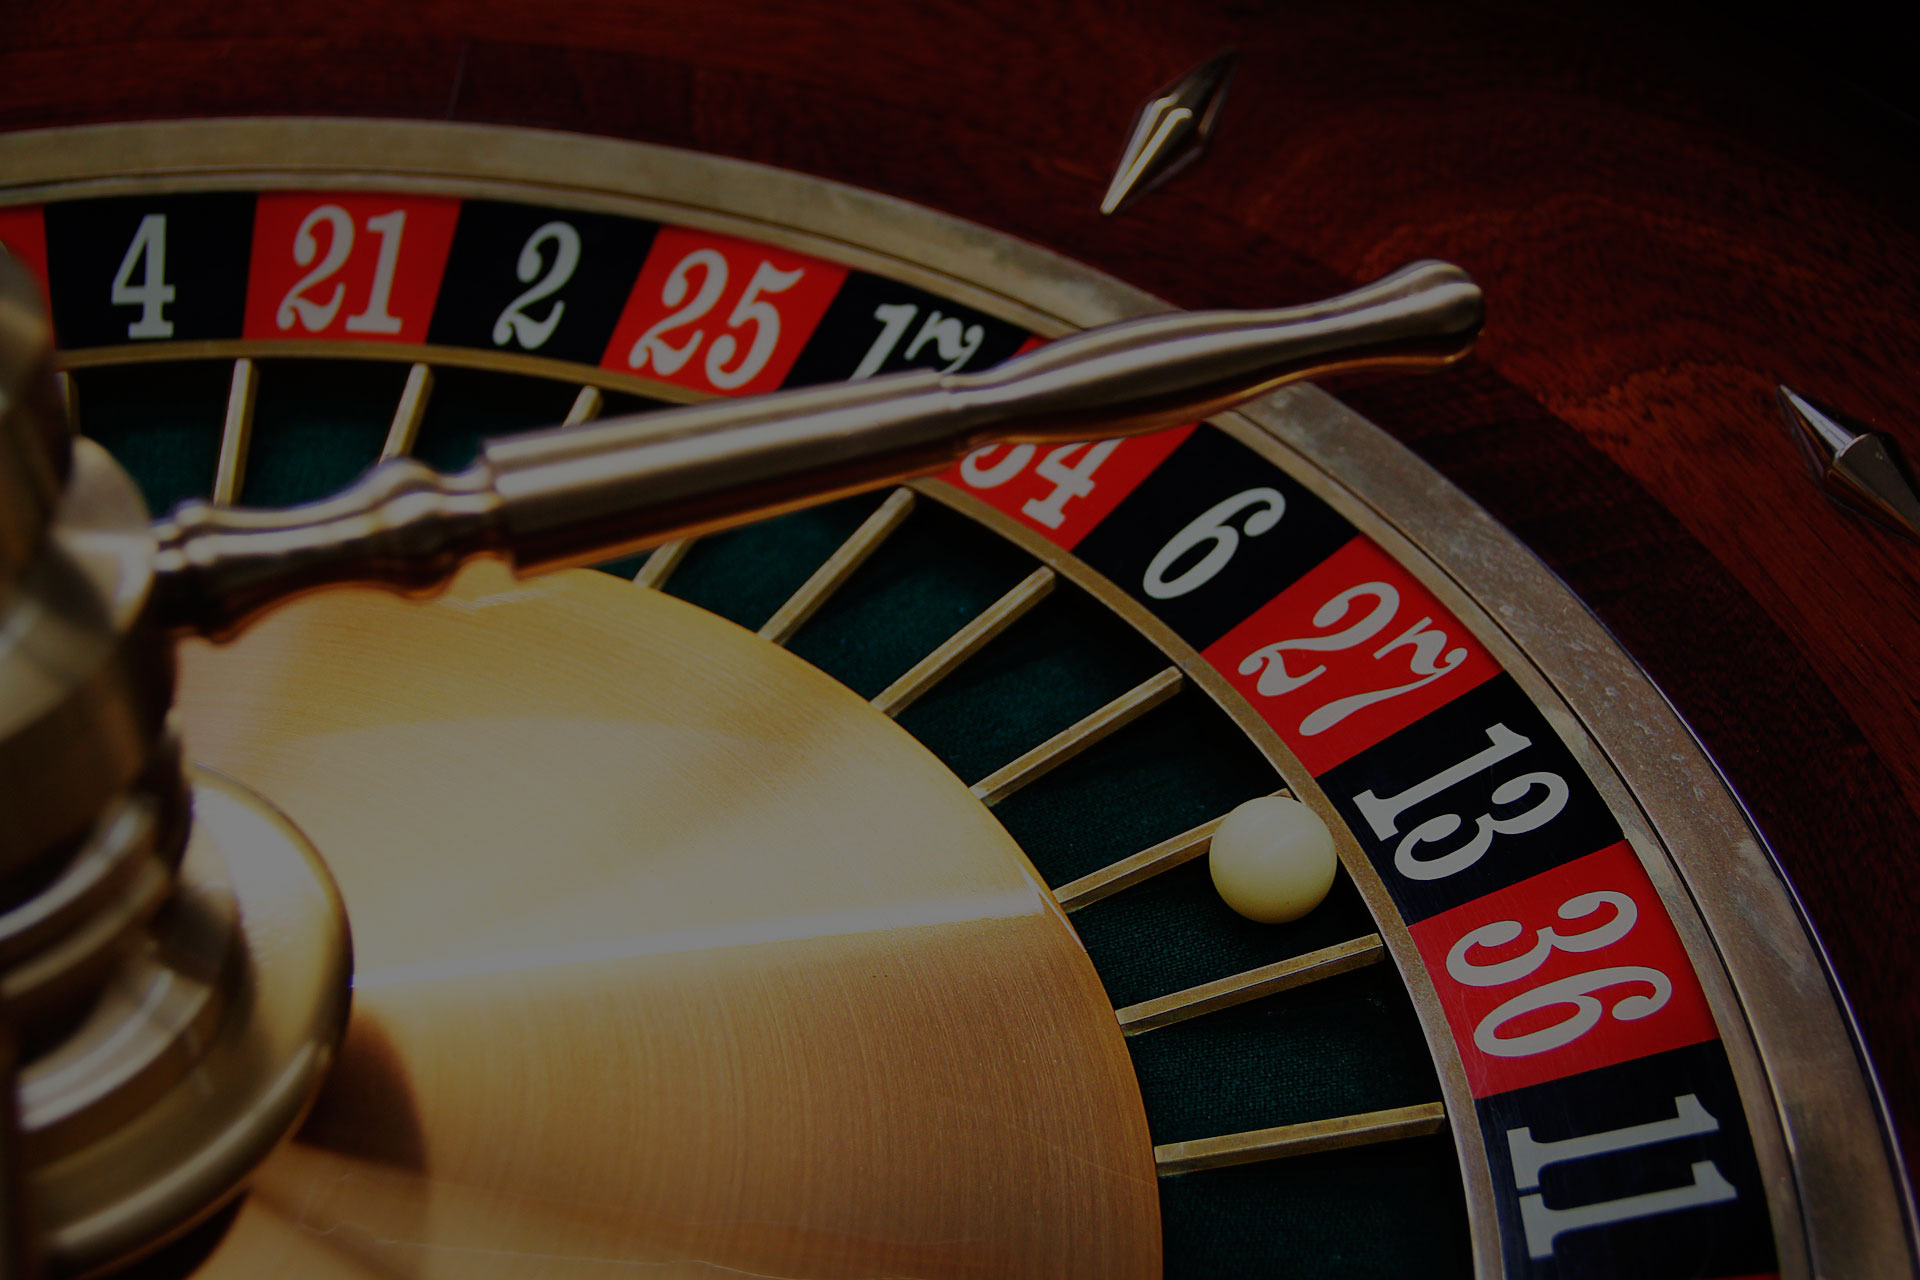 BECOME A PROFESSIONAL ROULETTE PLAYER